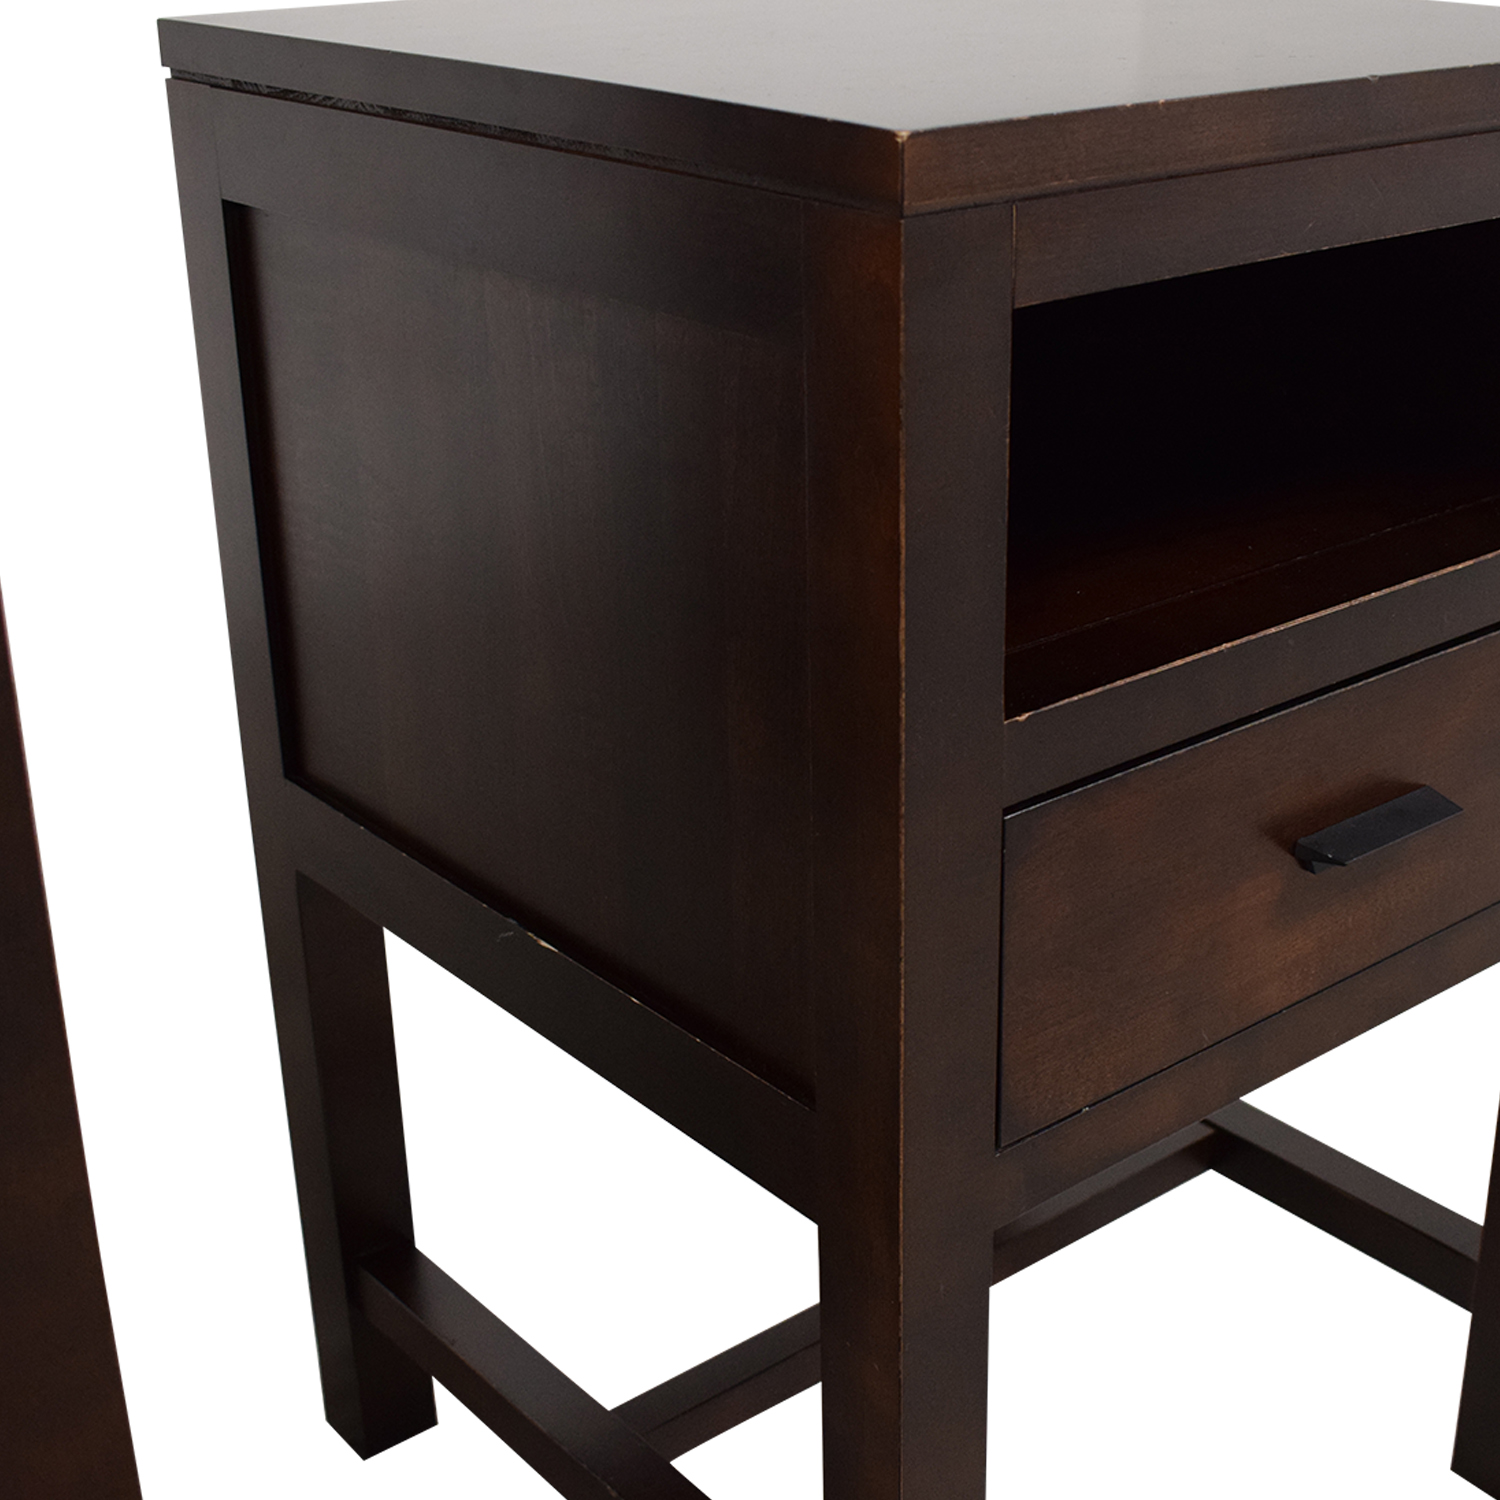 Durham Furniture Durham Furniture Maple Wood Night Stands coupon